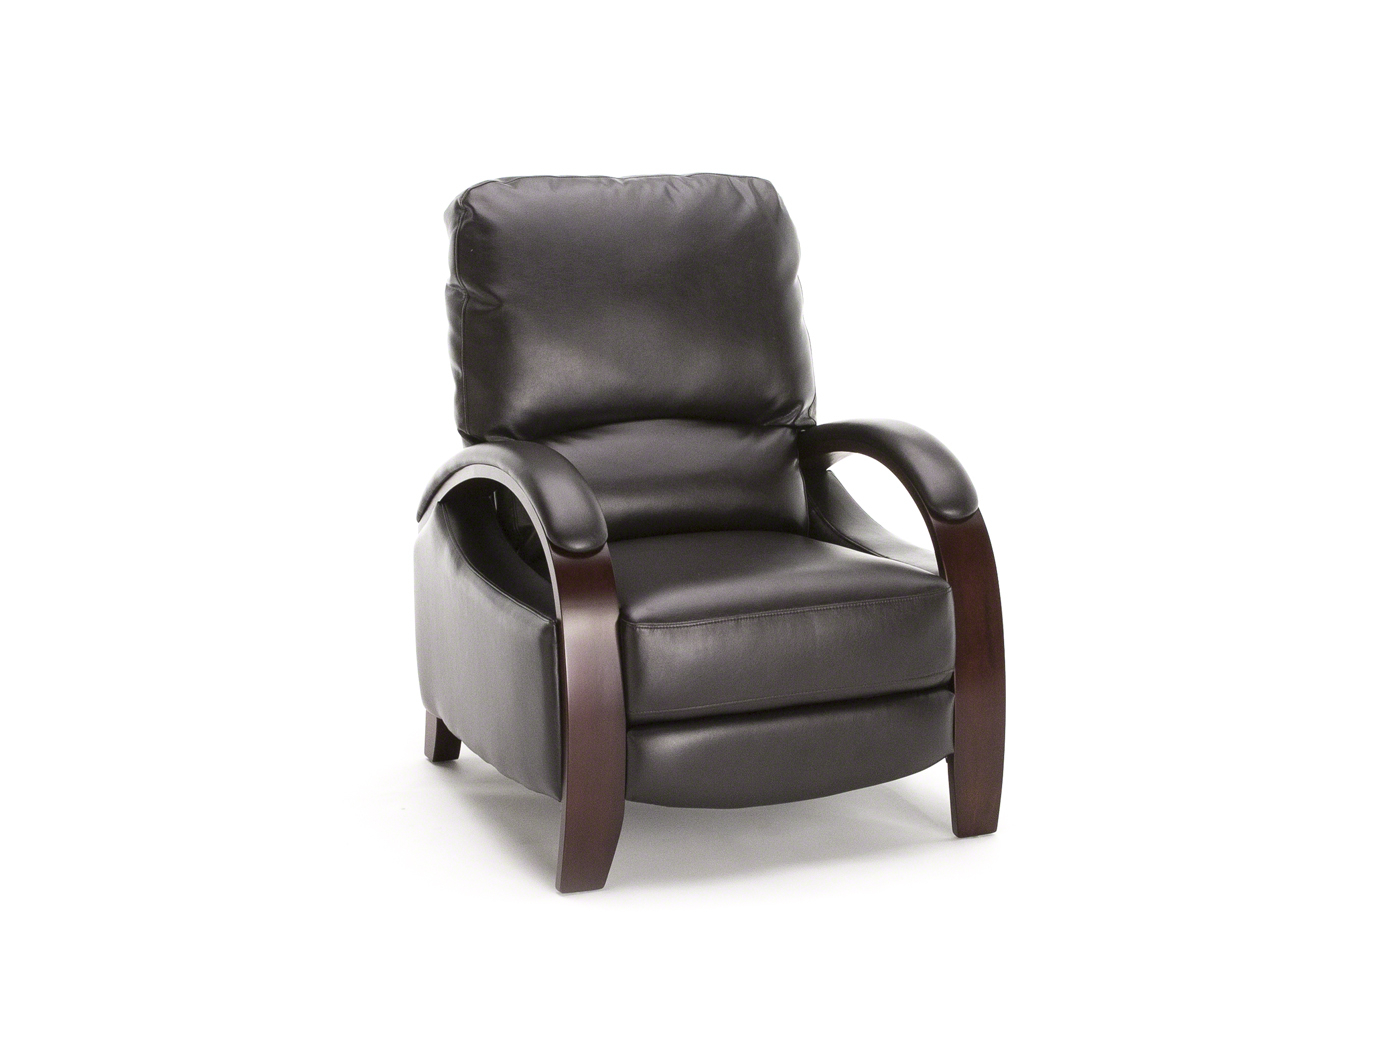 Living Room – Recliners | Steinhafels Pertaining To Hercules Chocolate Swivel Glider Recliners (View 18 of 25)